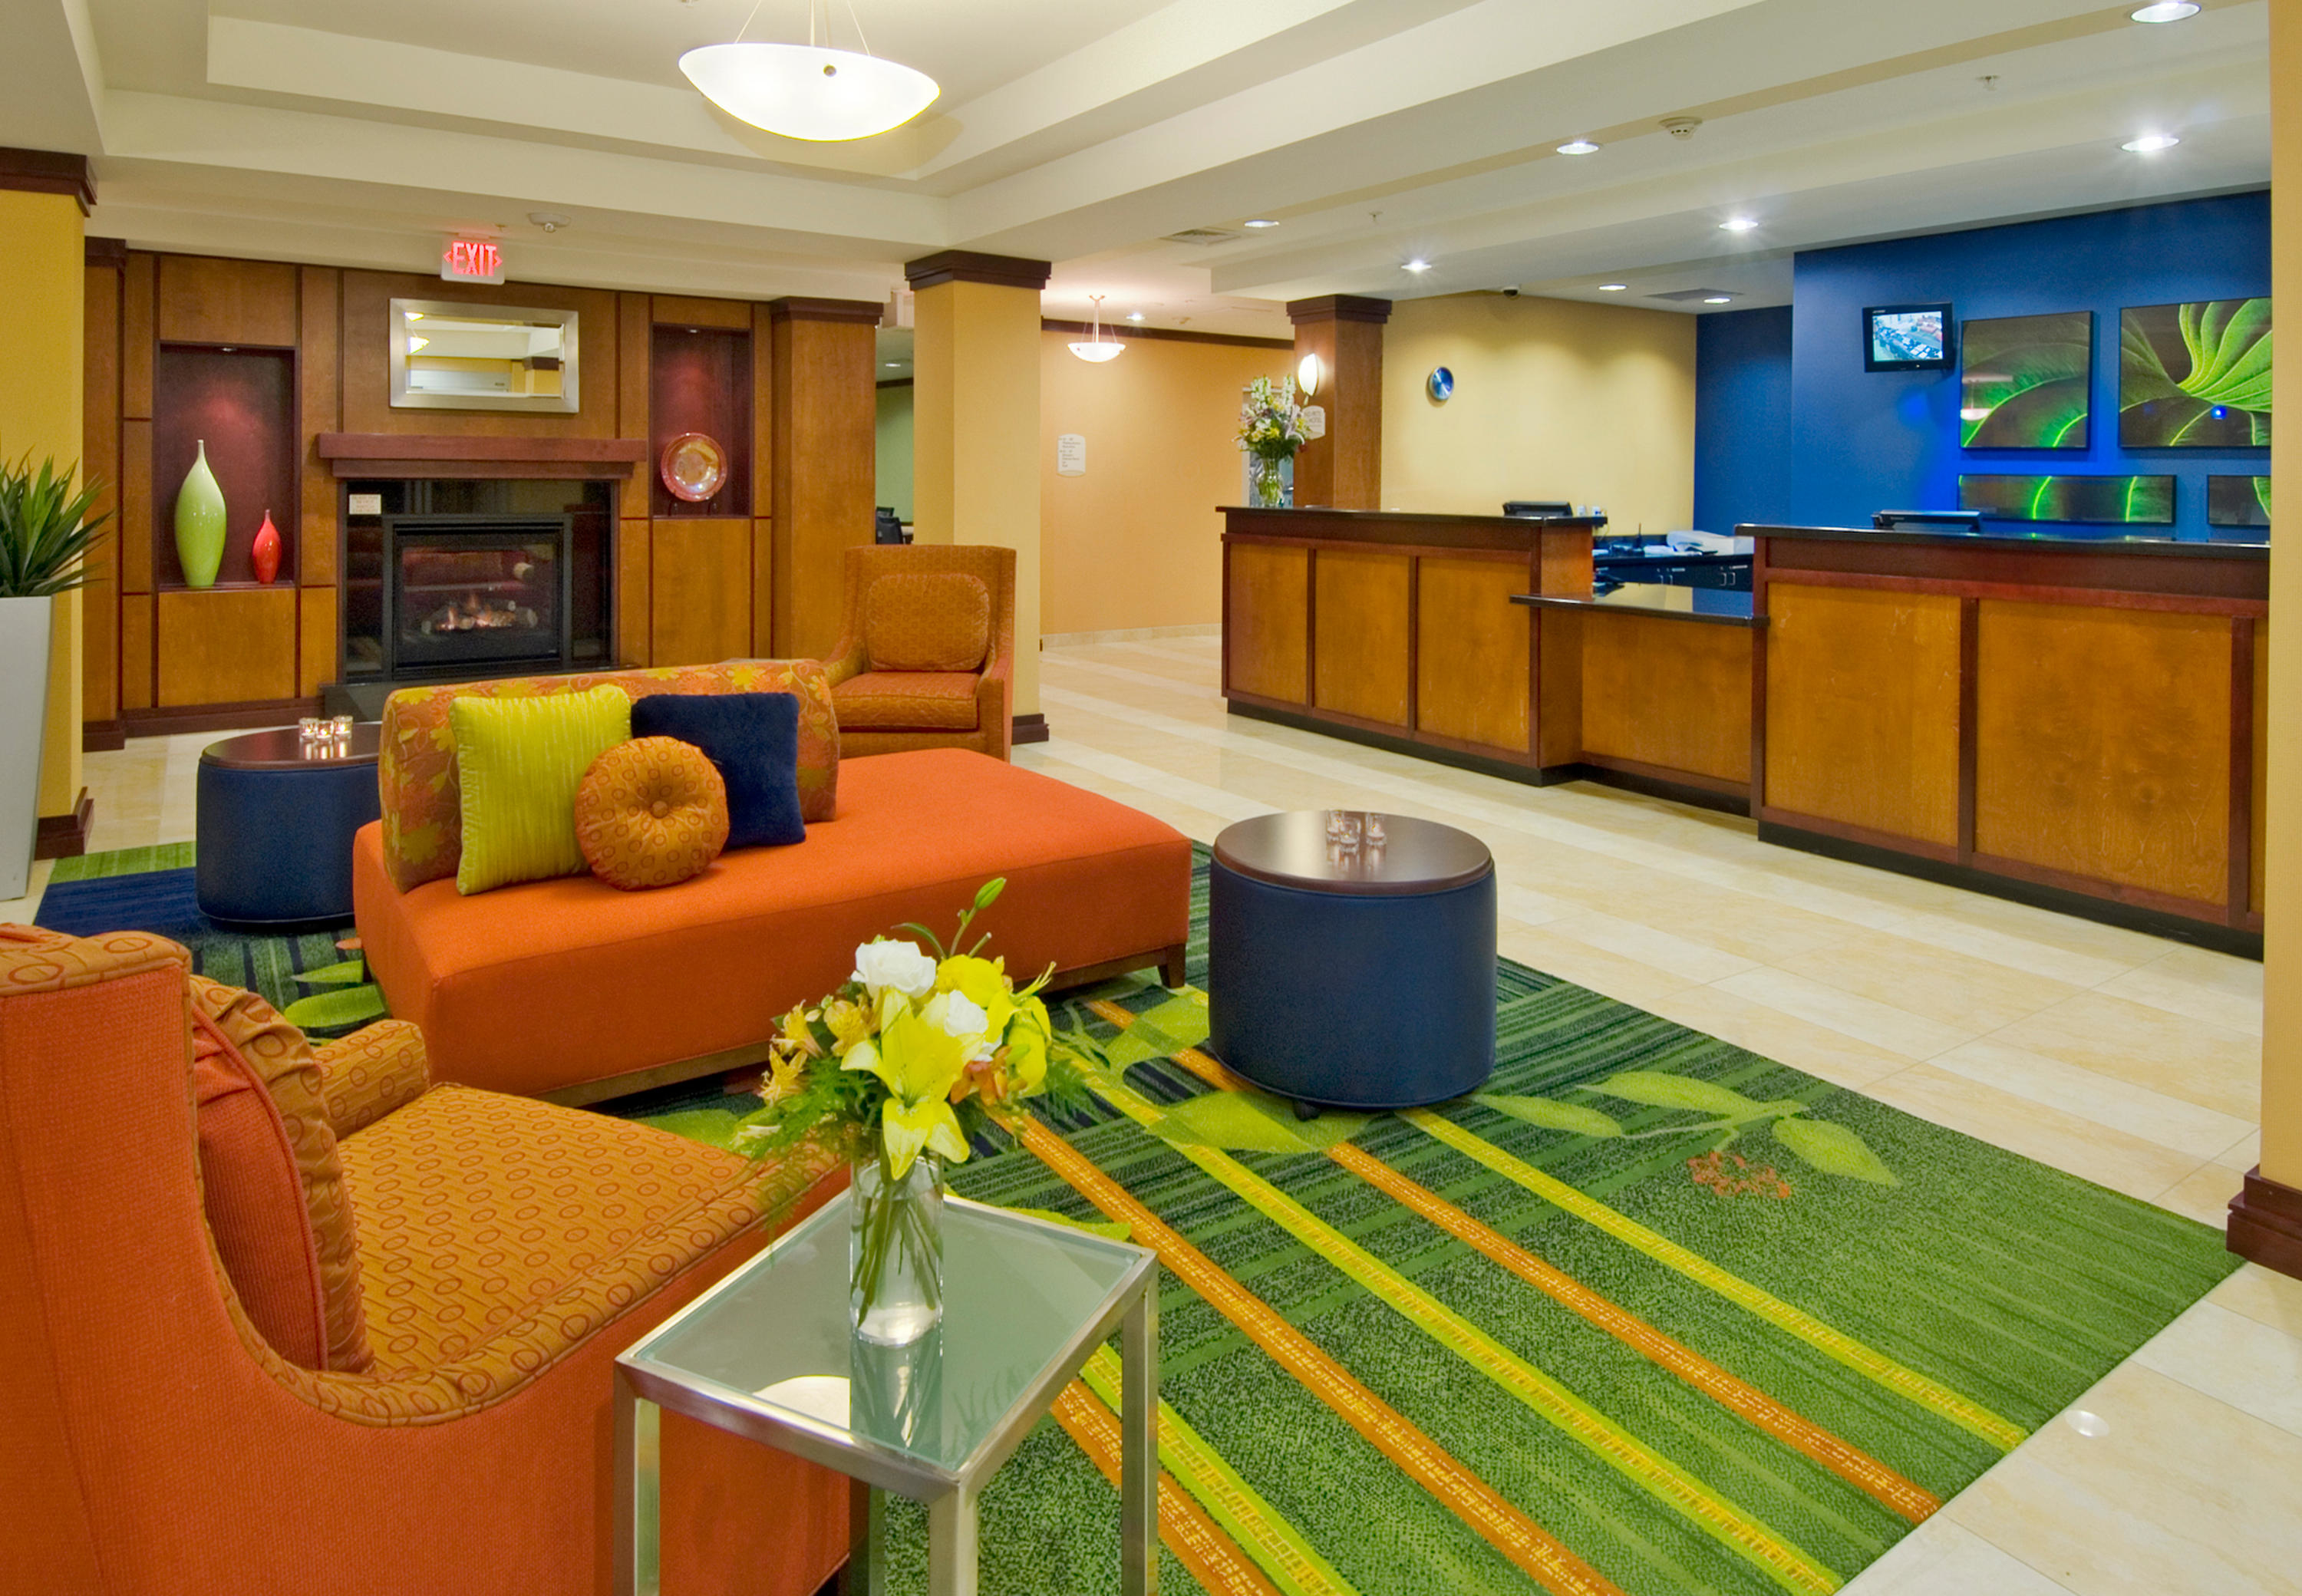 Fairfield Inn & Suites by Marriott Austin North/Parmer Lane image 16